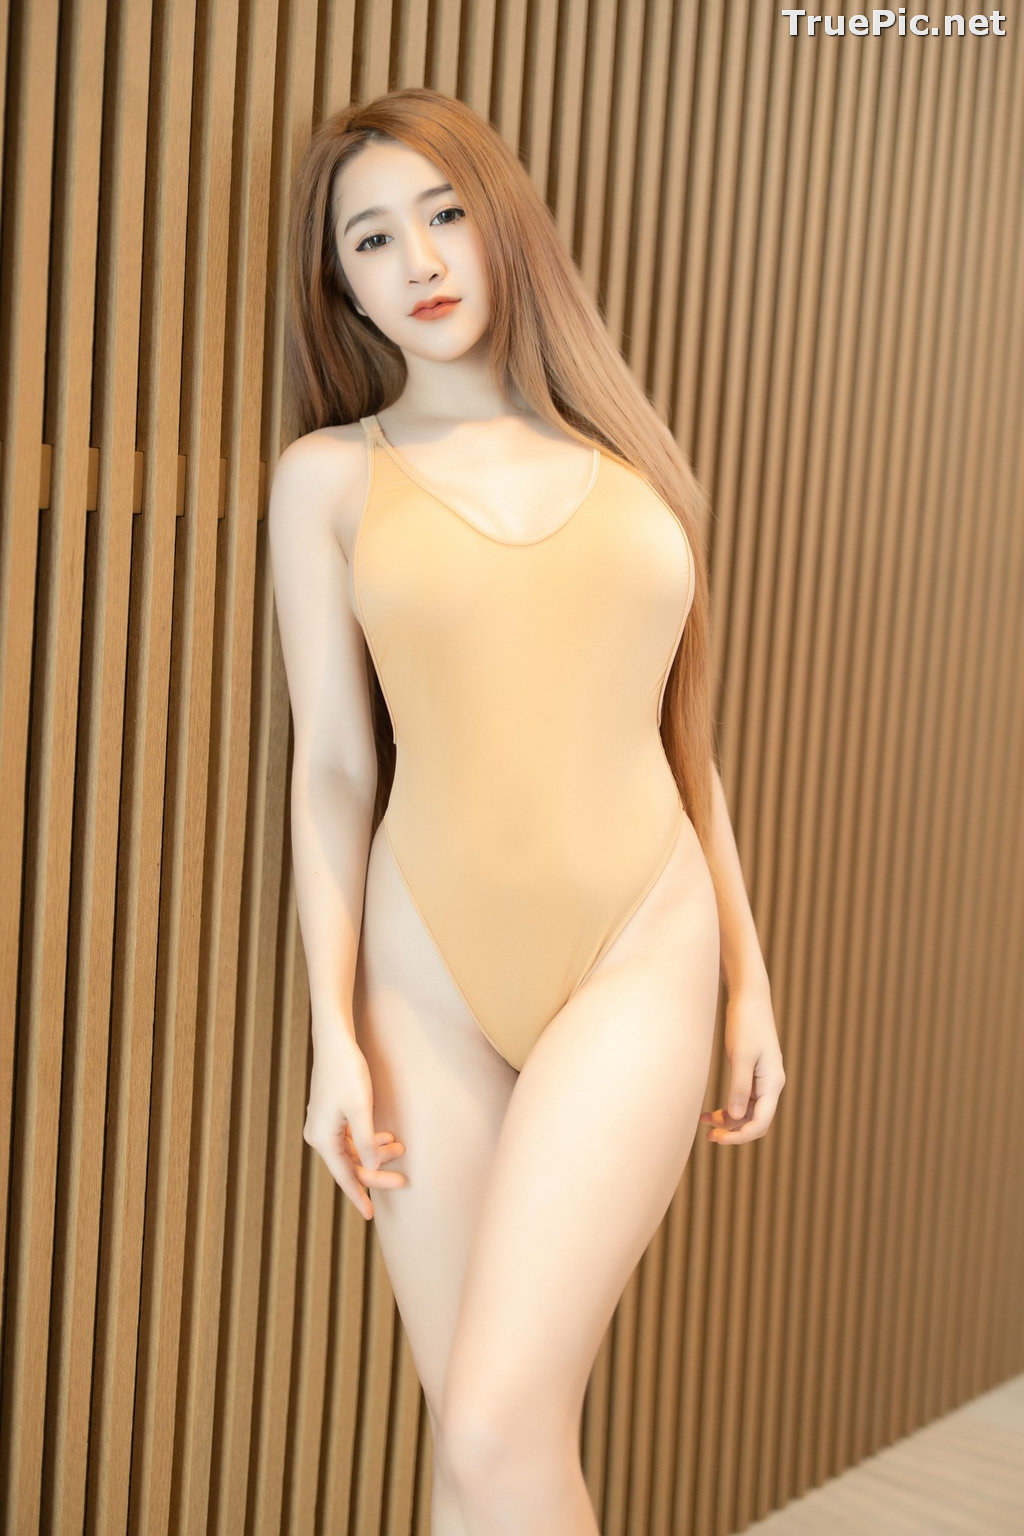 Image Thailand Model - Kankanit Pinchaiyapat - Yellow and Purple Swimsuit - TruePic.net - Picture-10